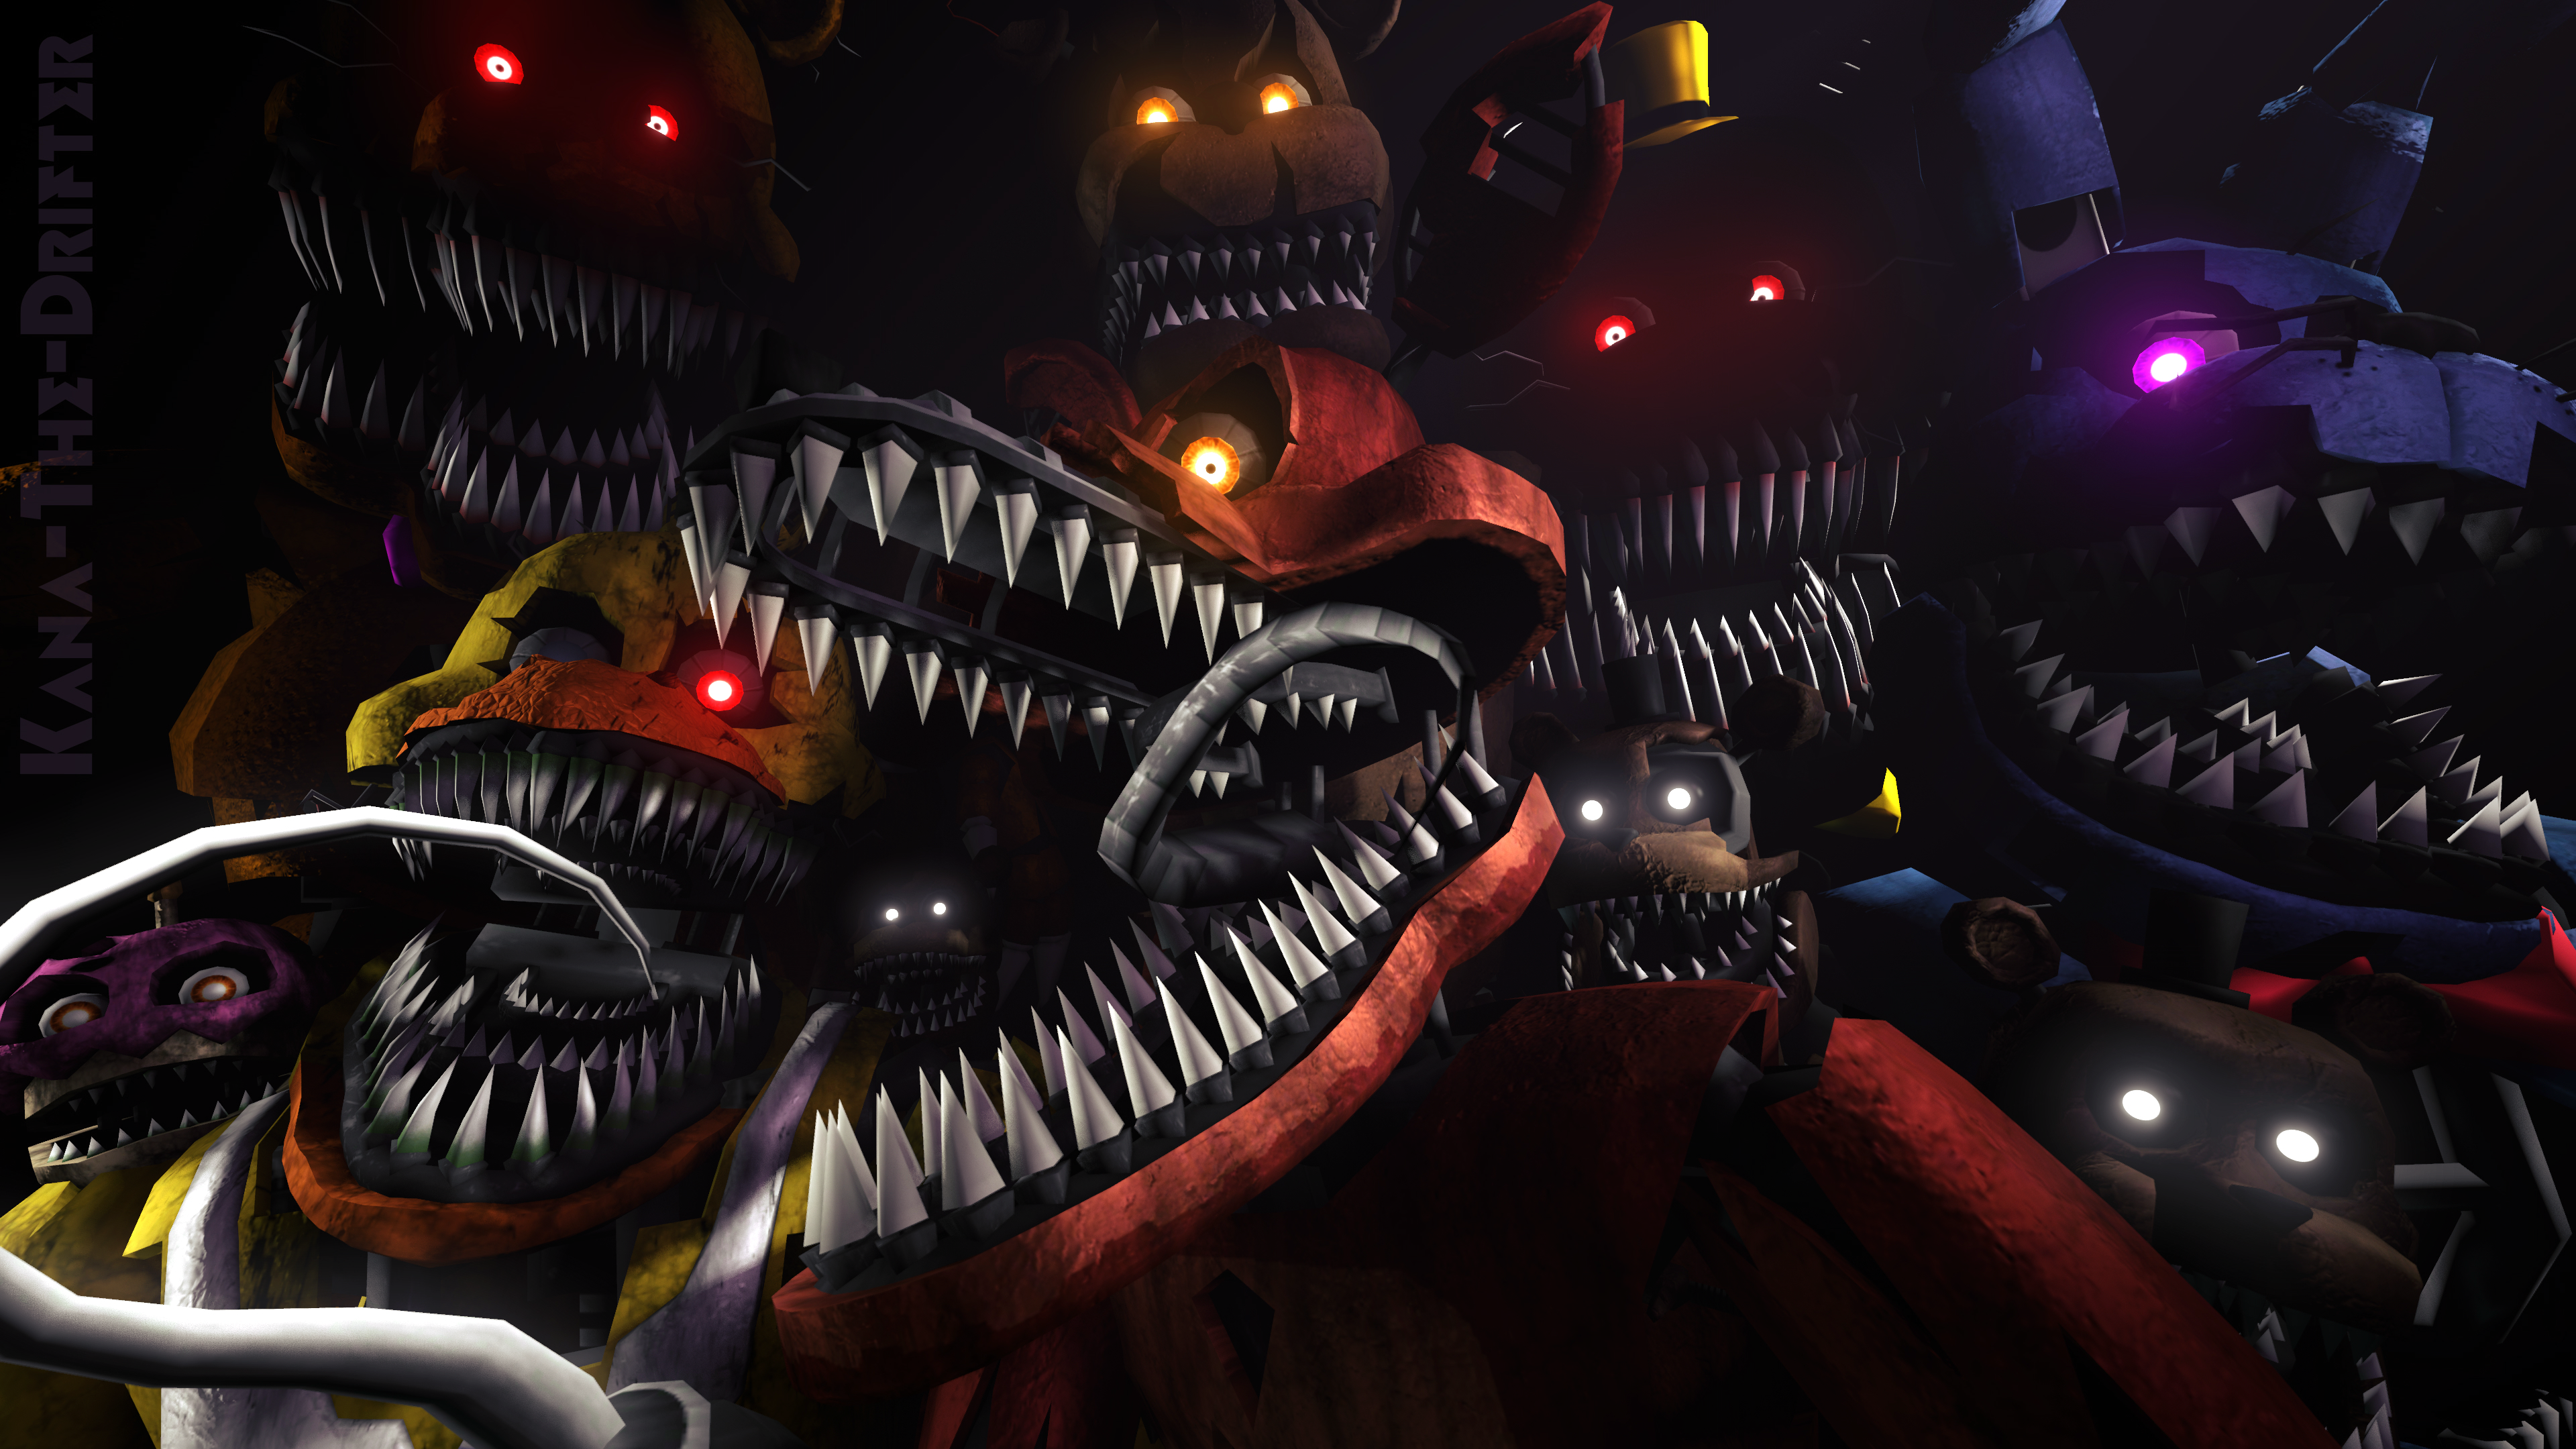 Well Stay Here Forever FNAF SFM Wallpaper by Kana The Drifter on 3840x2160